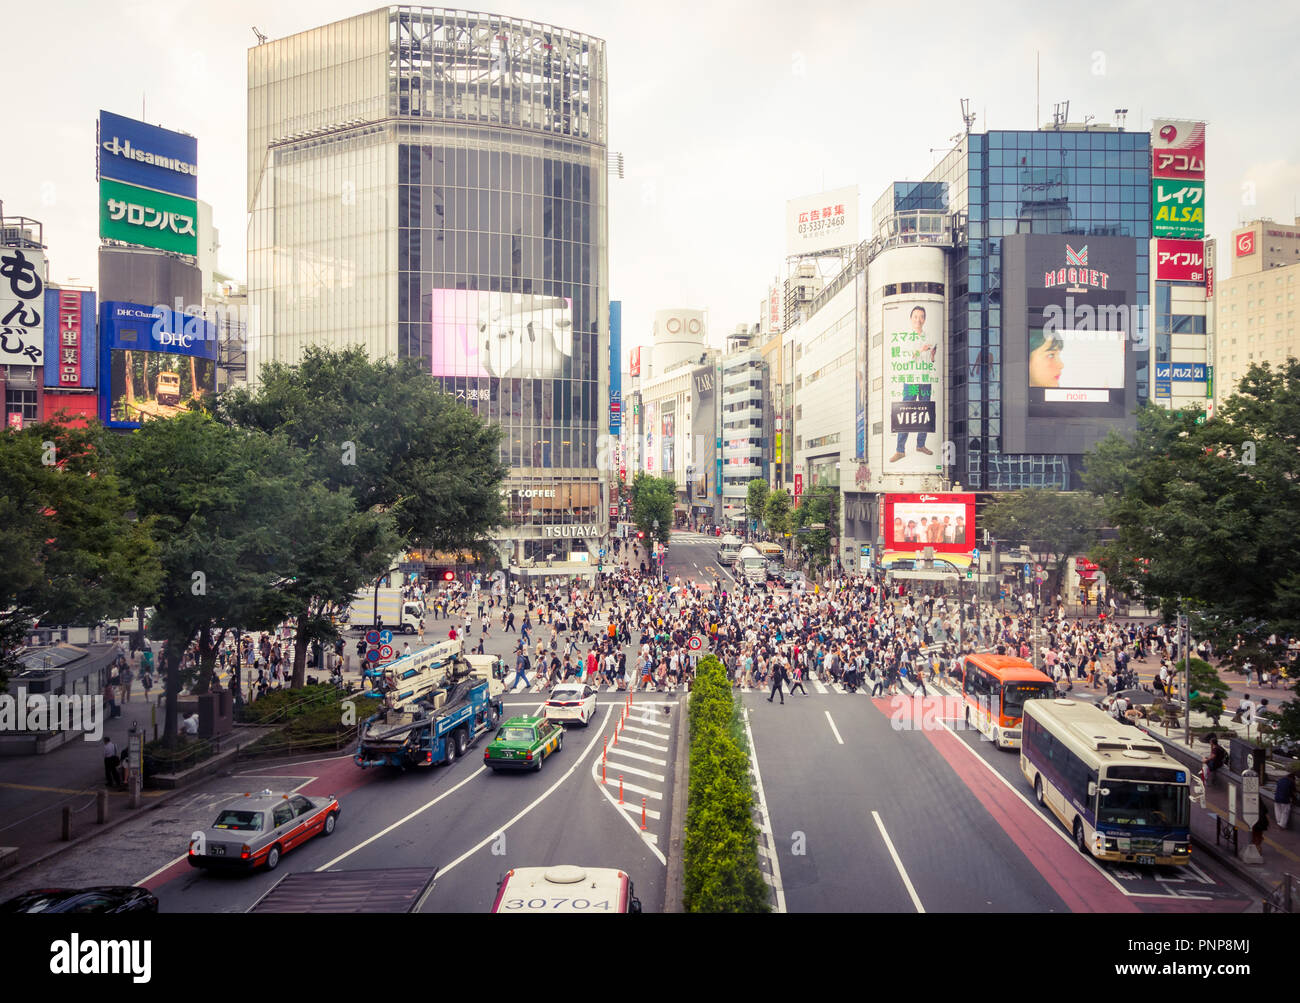 The busy Shibuya scramble crossing (Shibuya Crossing), reputed to be the busiest crosswalk in the world.  Shibuya, Tokyo, Japan. - Stock Image